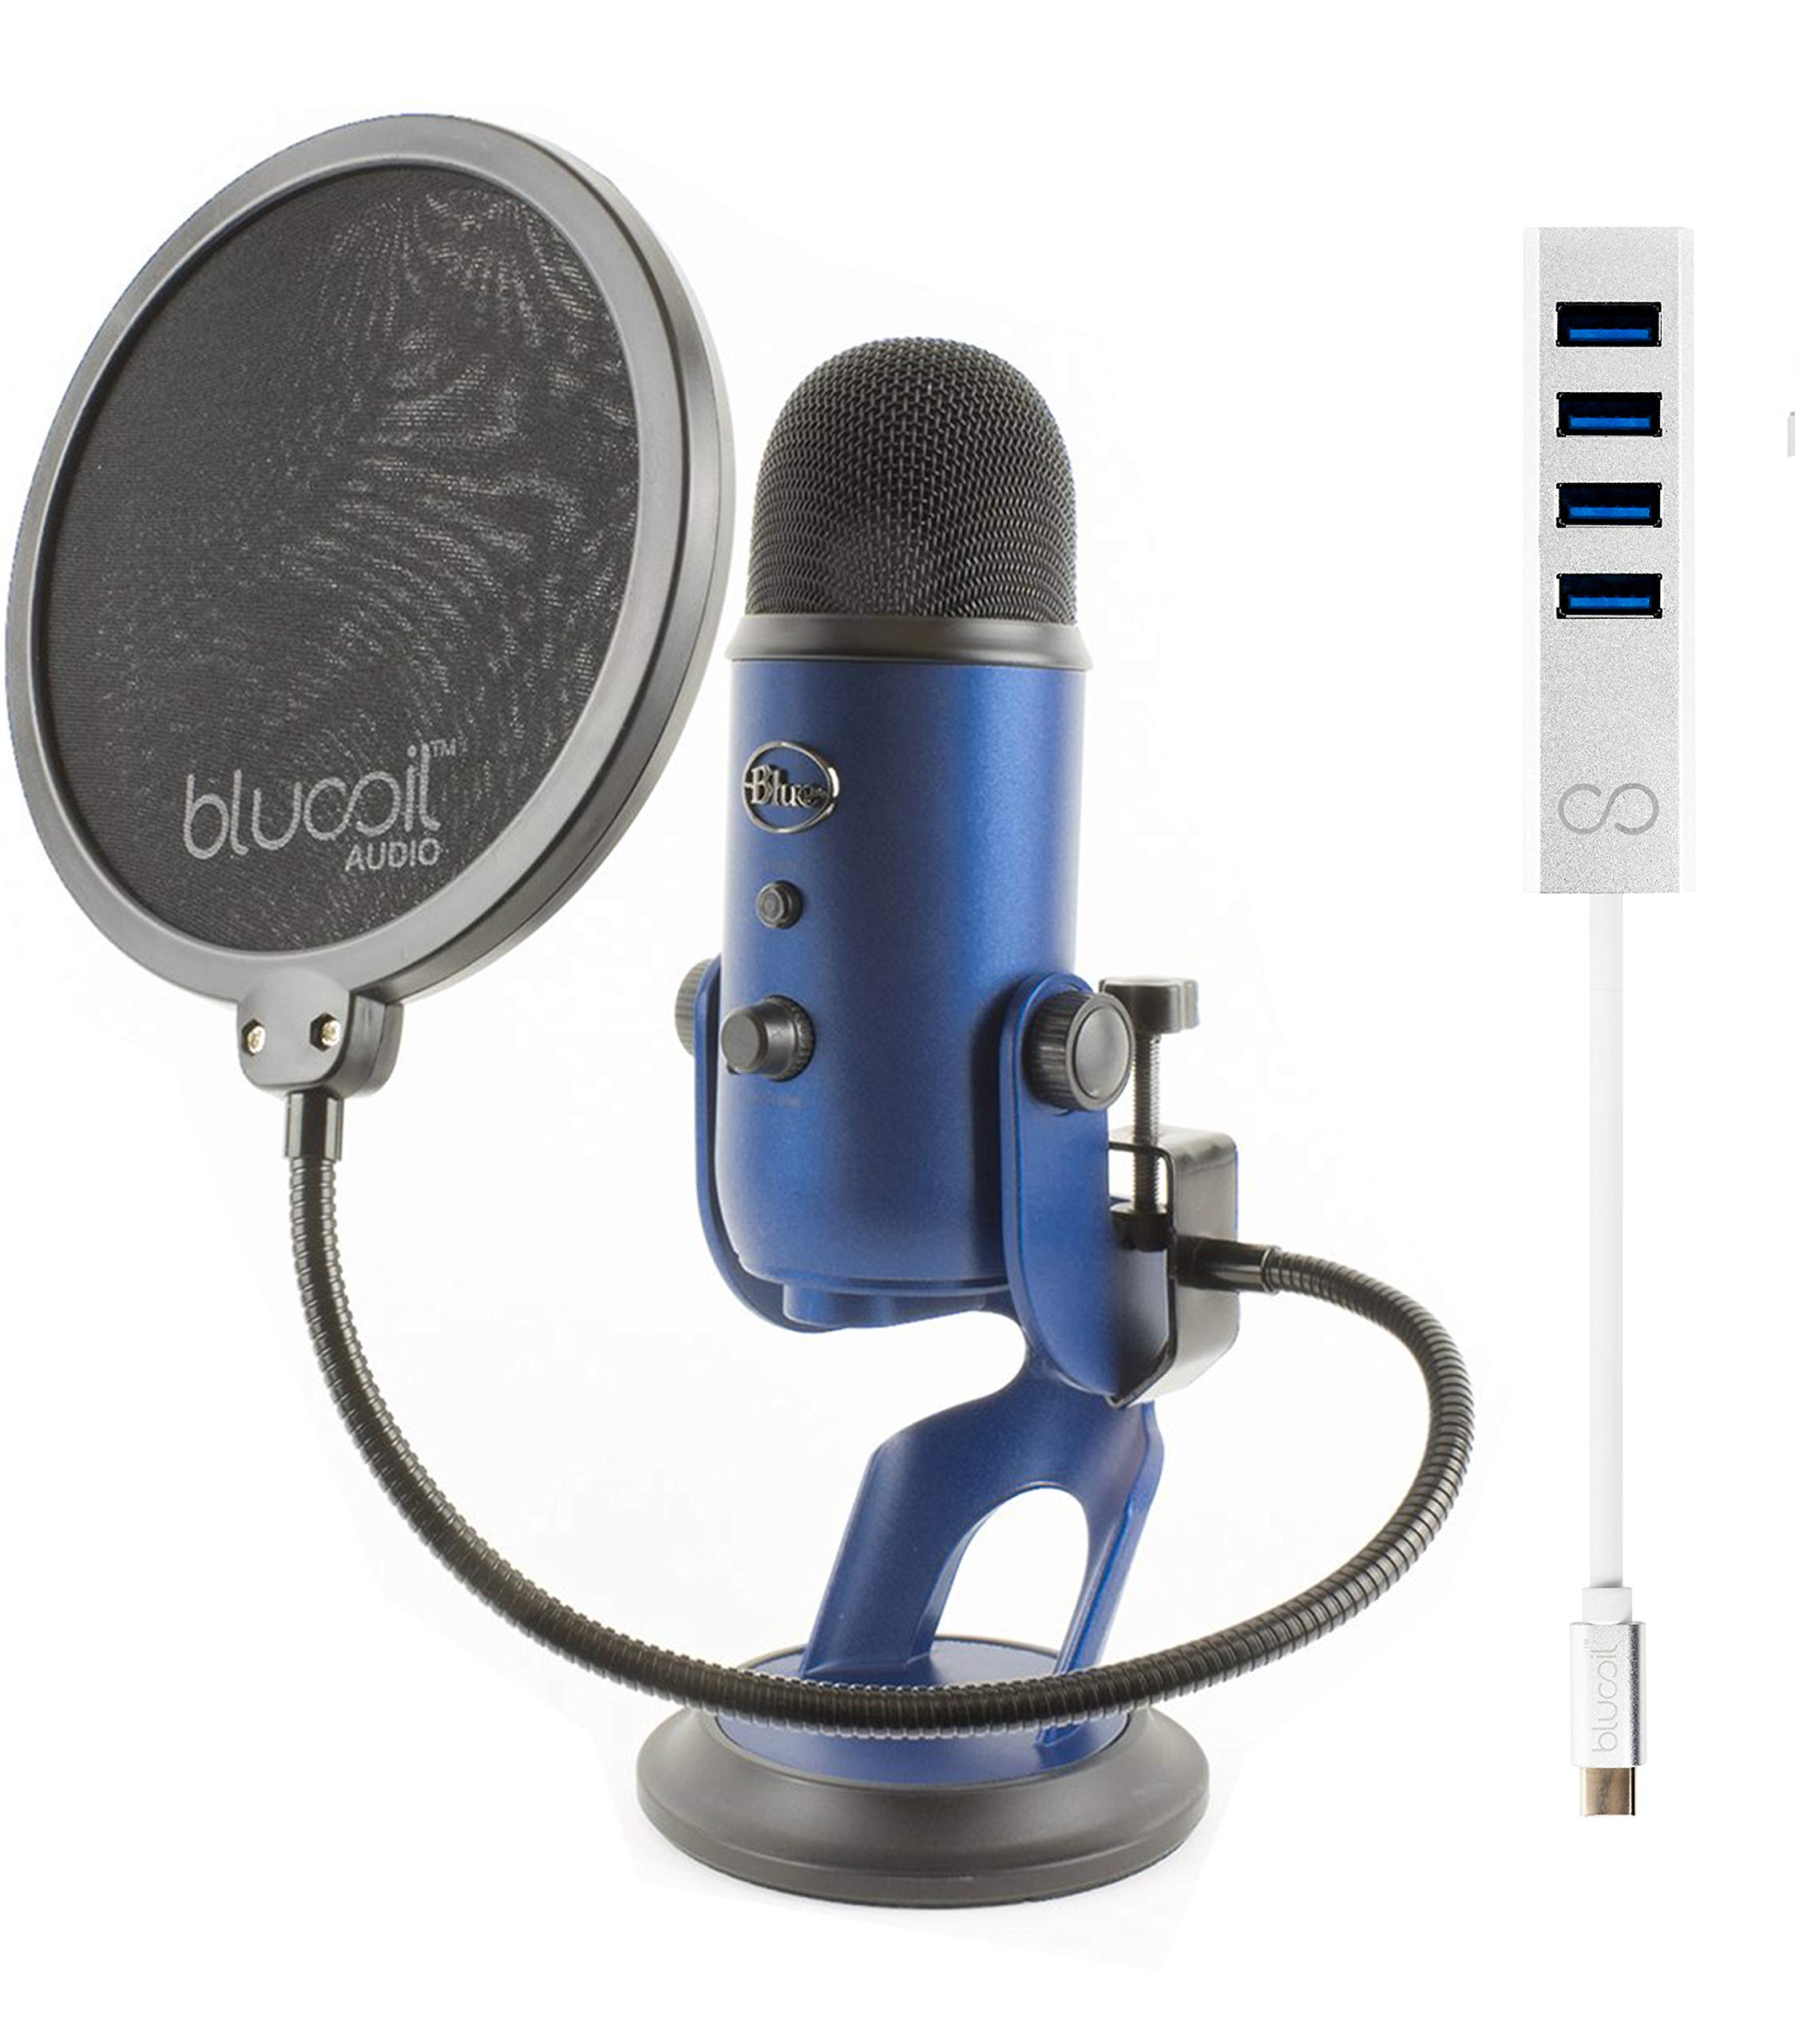 Blue Microphones Yeti USB Mic for Pro Studio Recording (Midnight Blue) Bundle with Blucoil USB C-Type Mini Hub with 4 USB Ports and Pop Filter Windscreen